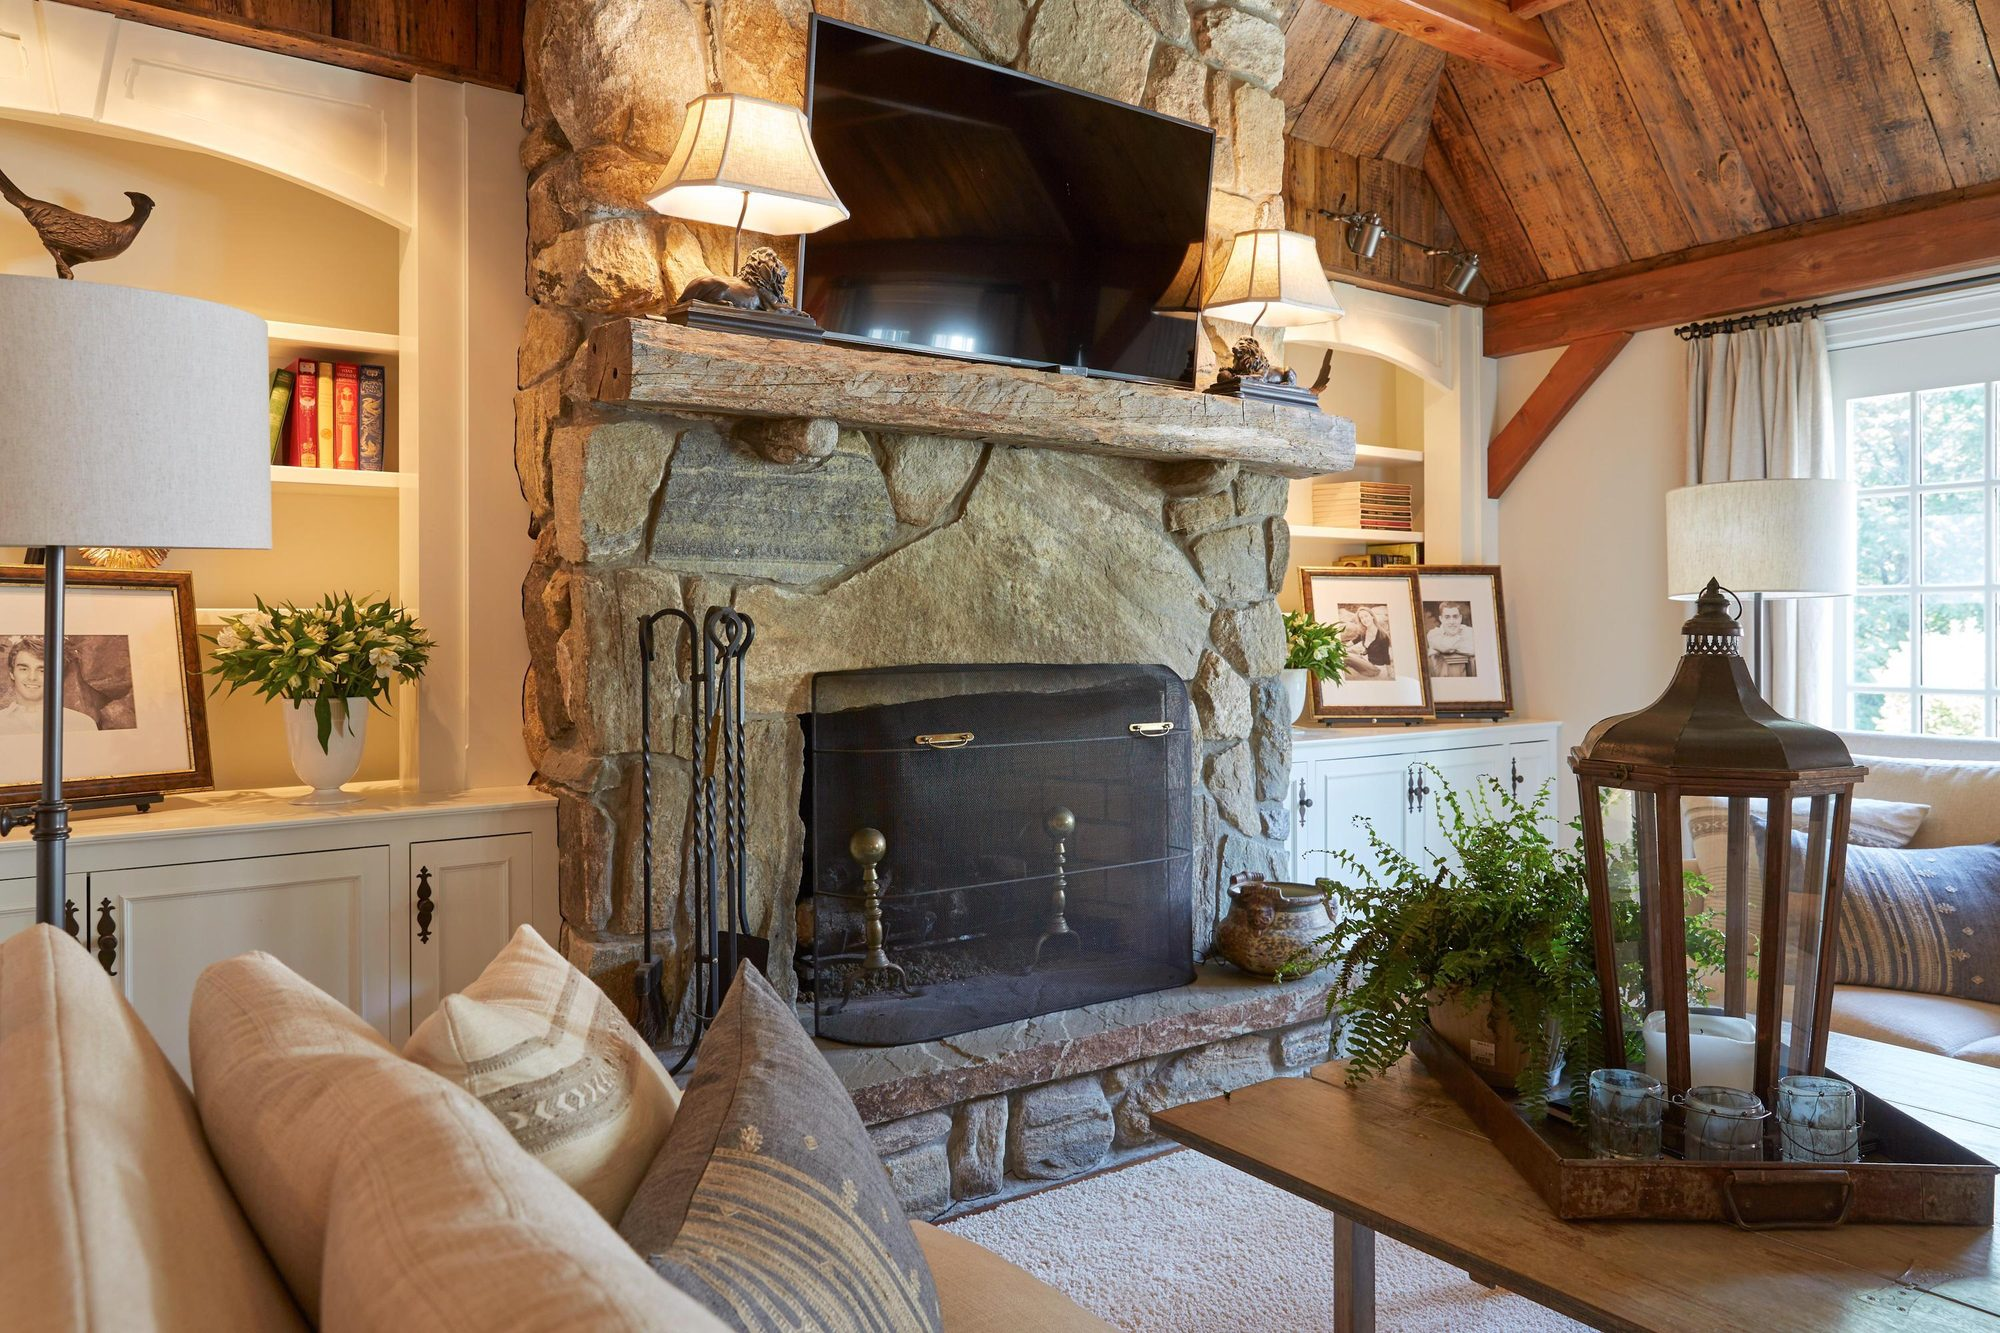 Real stone fireplace surround with a rustic style and a raised hearth.